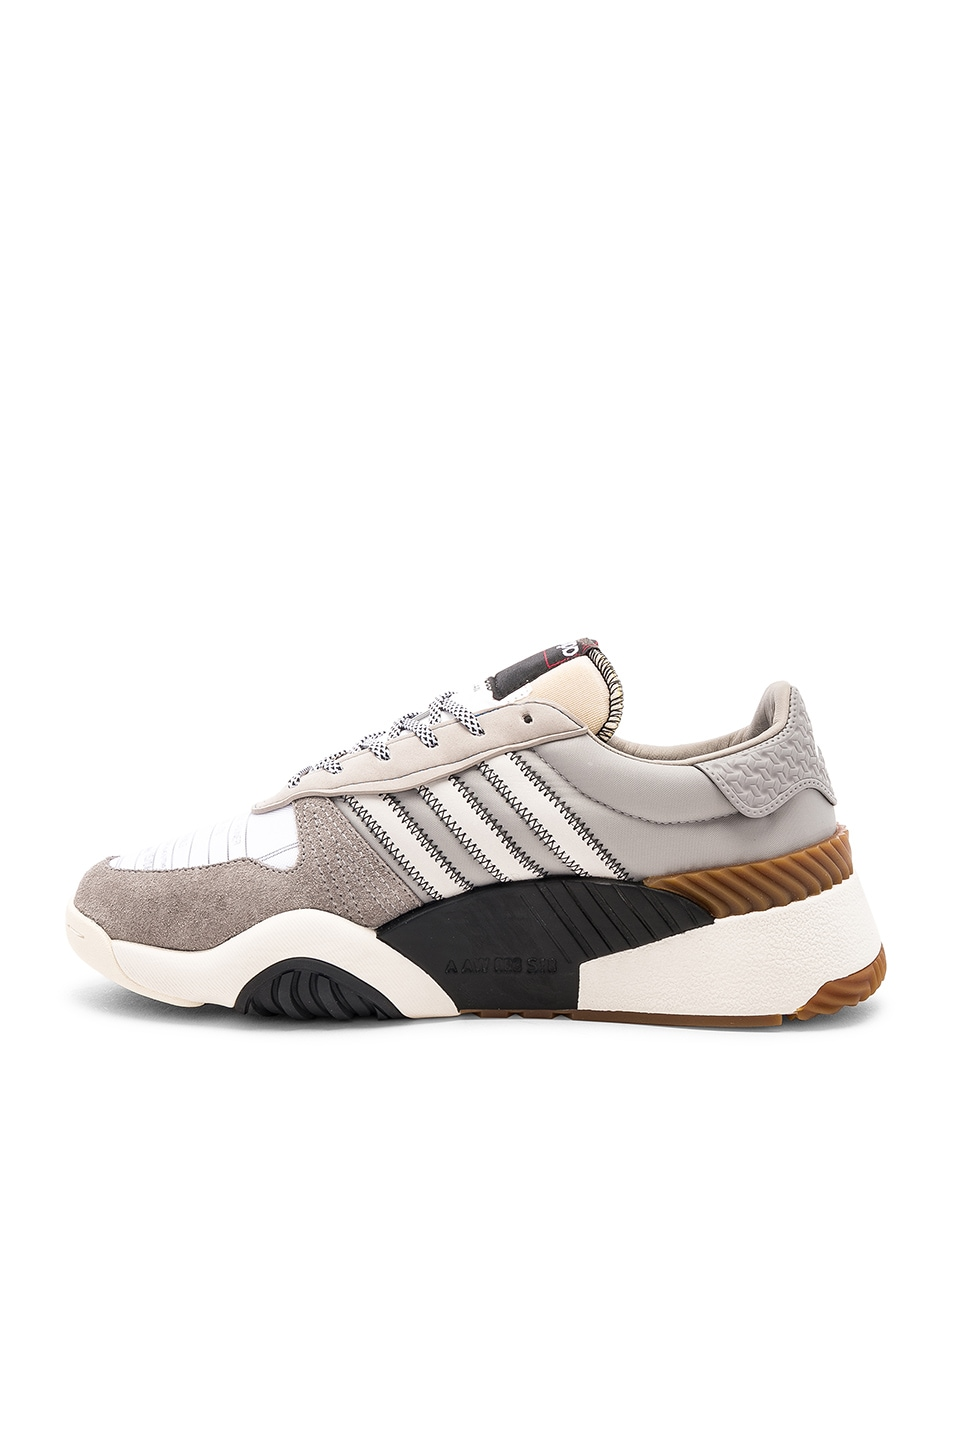 Image 5 of adidas by Alexander Wang Trainers in Light Brown & Core White & Core Black